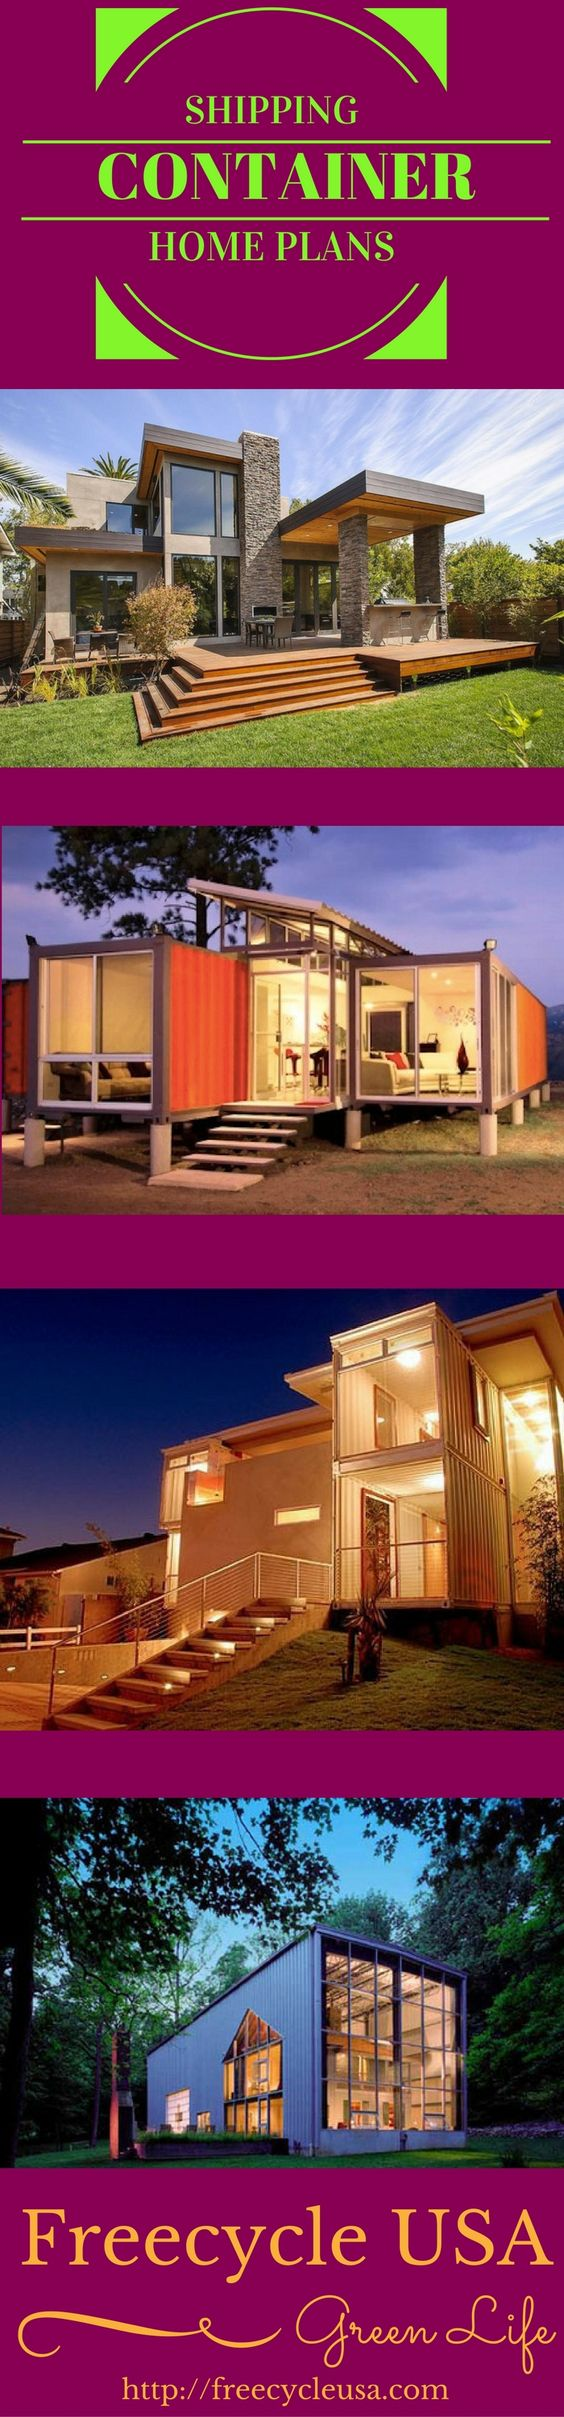 Beautiful shipping containers and container homes on pinterest - Beautiful shipping container homes ...